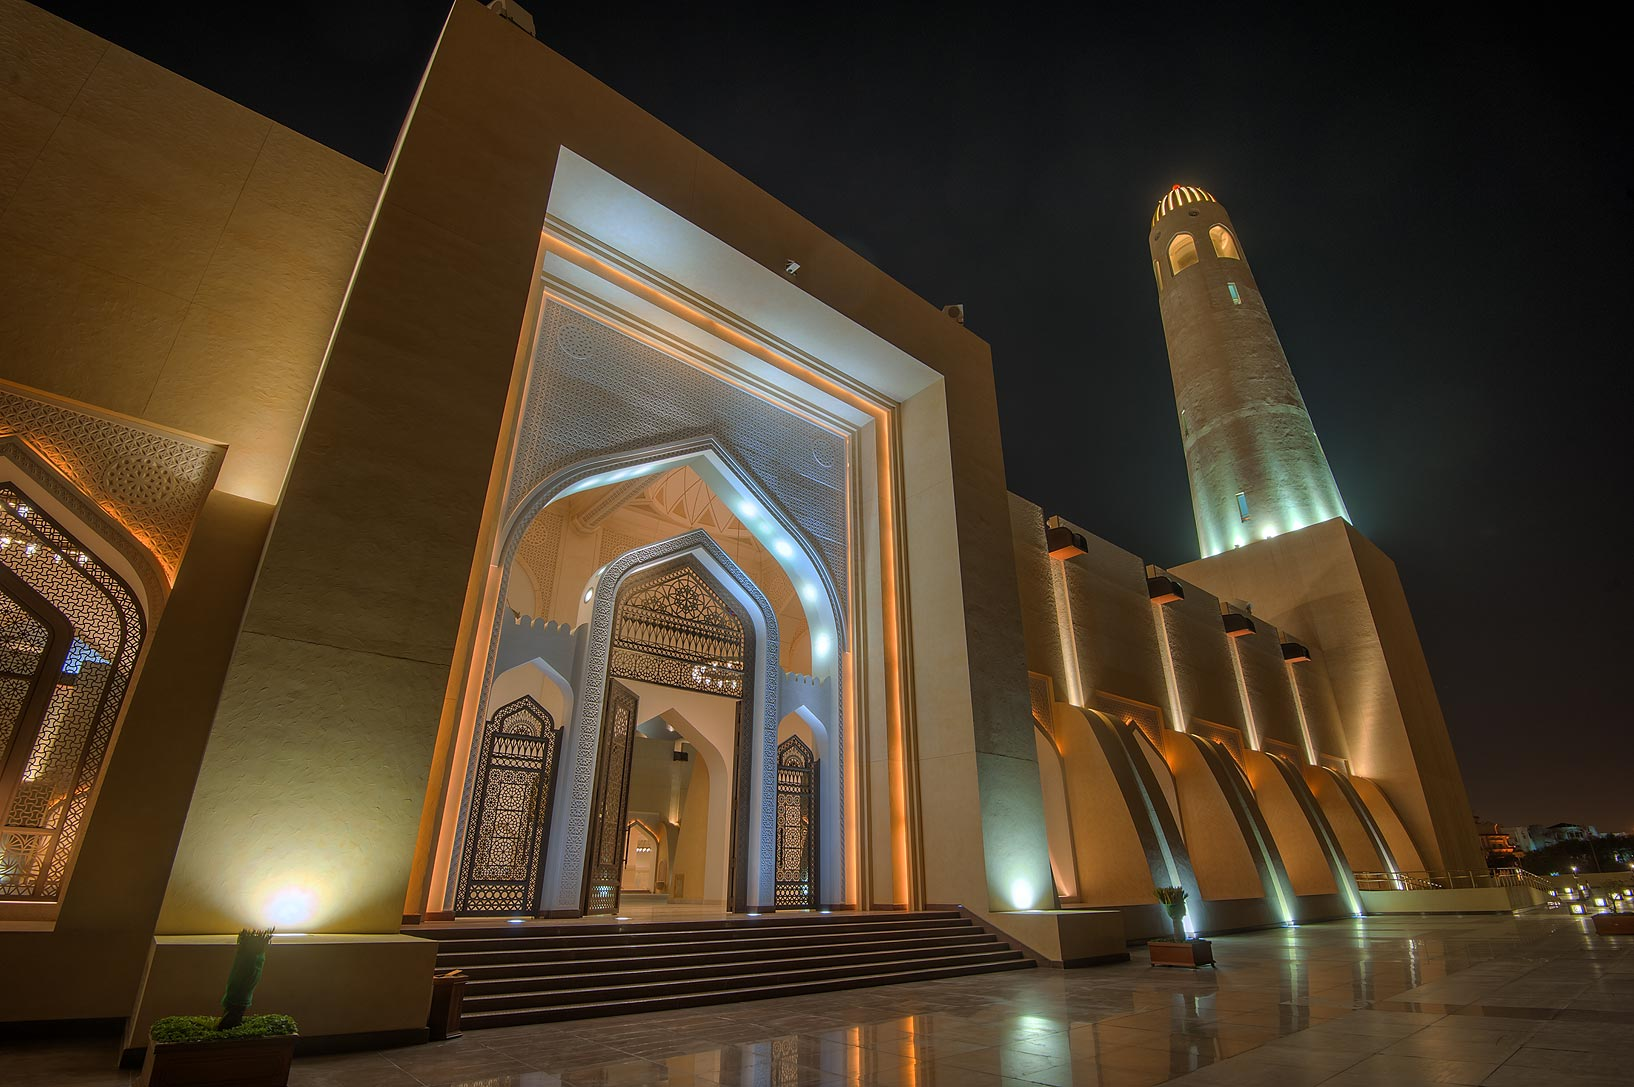 Women's Hall of State Mosque (Sheikh Muhammad Ibn Abdul Wahhab Mosque). Doha, Qatar